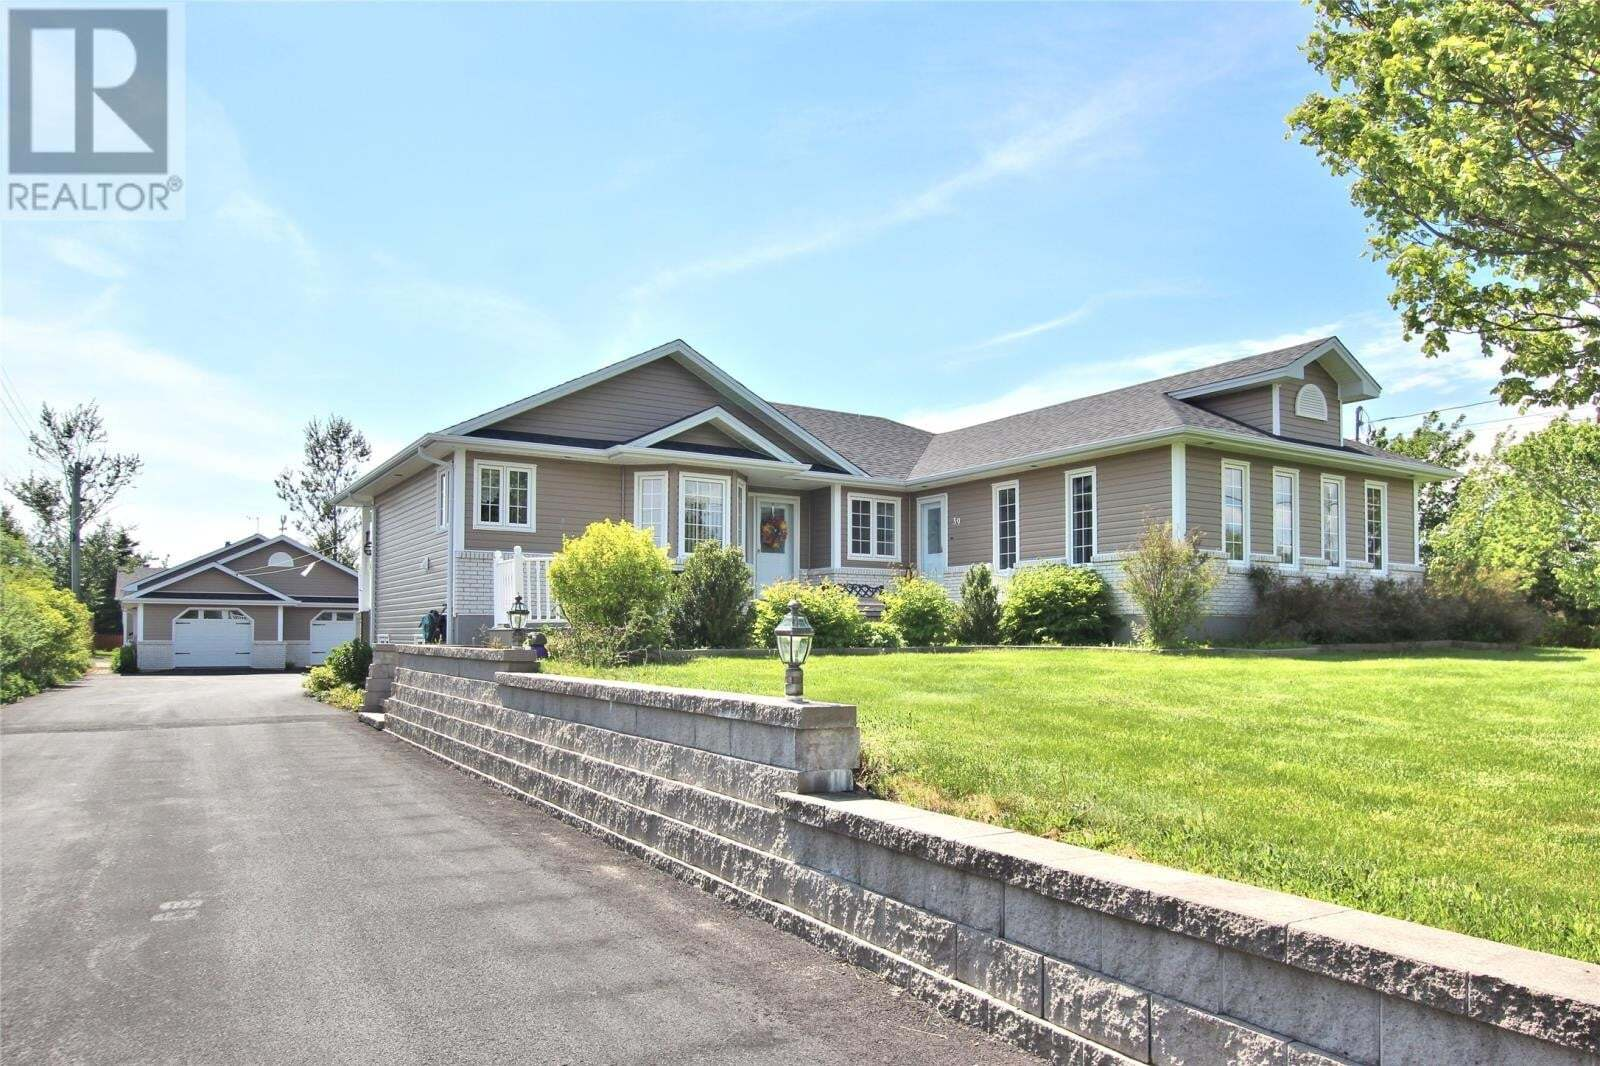 House for sale at 39 Greens Rd Bay Roberts Newfoundland - MLS: 1216319